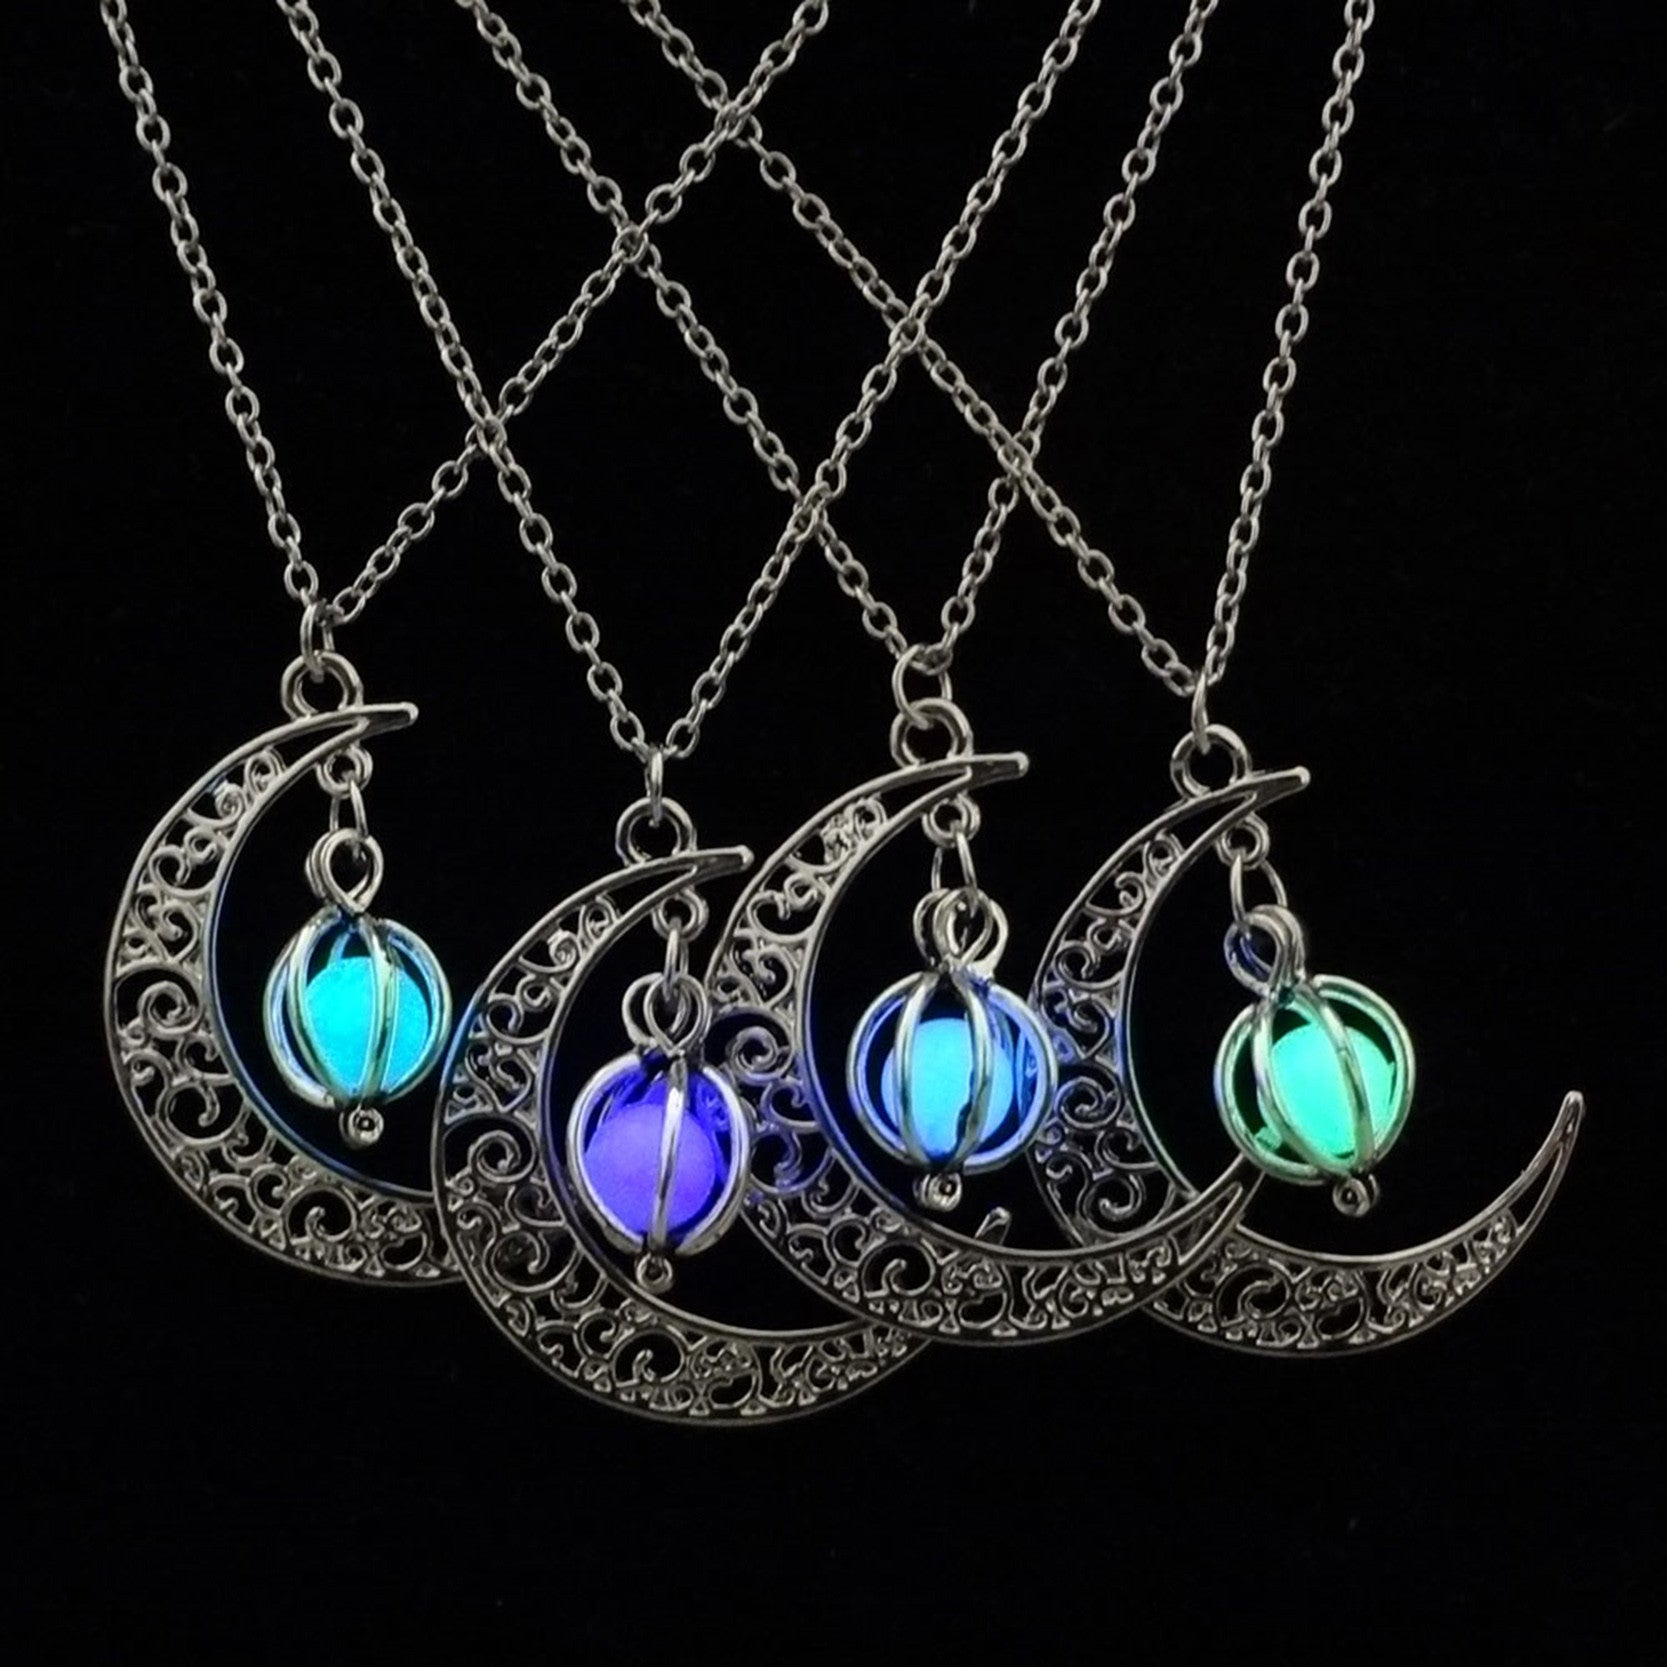 connector glow p necklace color tri store ntri necklaces